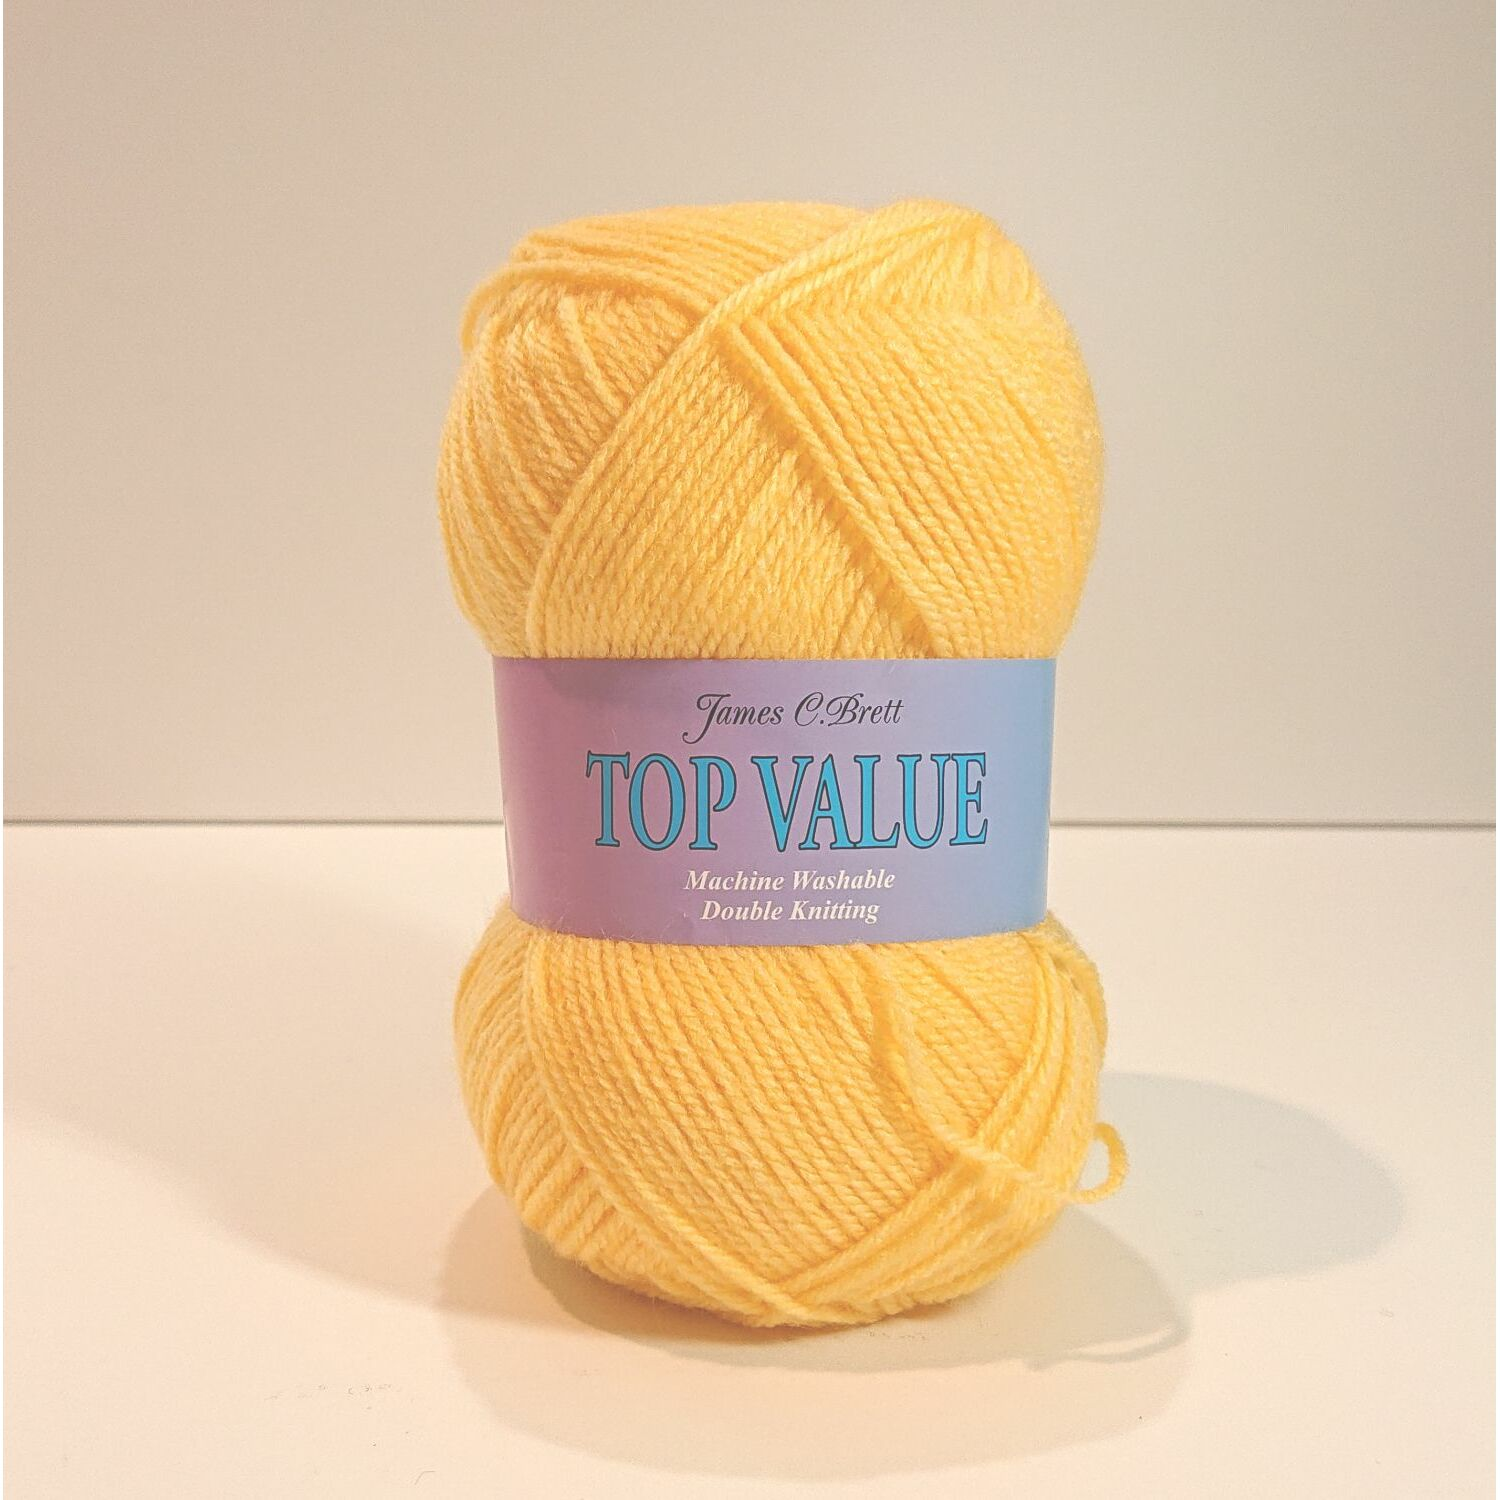 James C Brett Top Value DK Wool All Colours Available